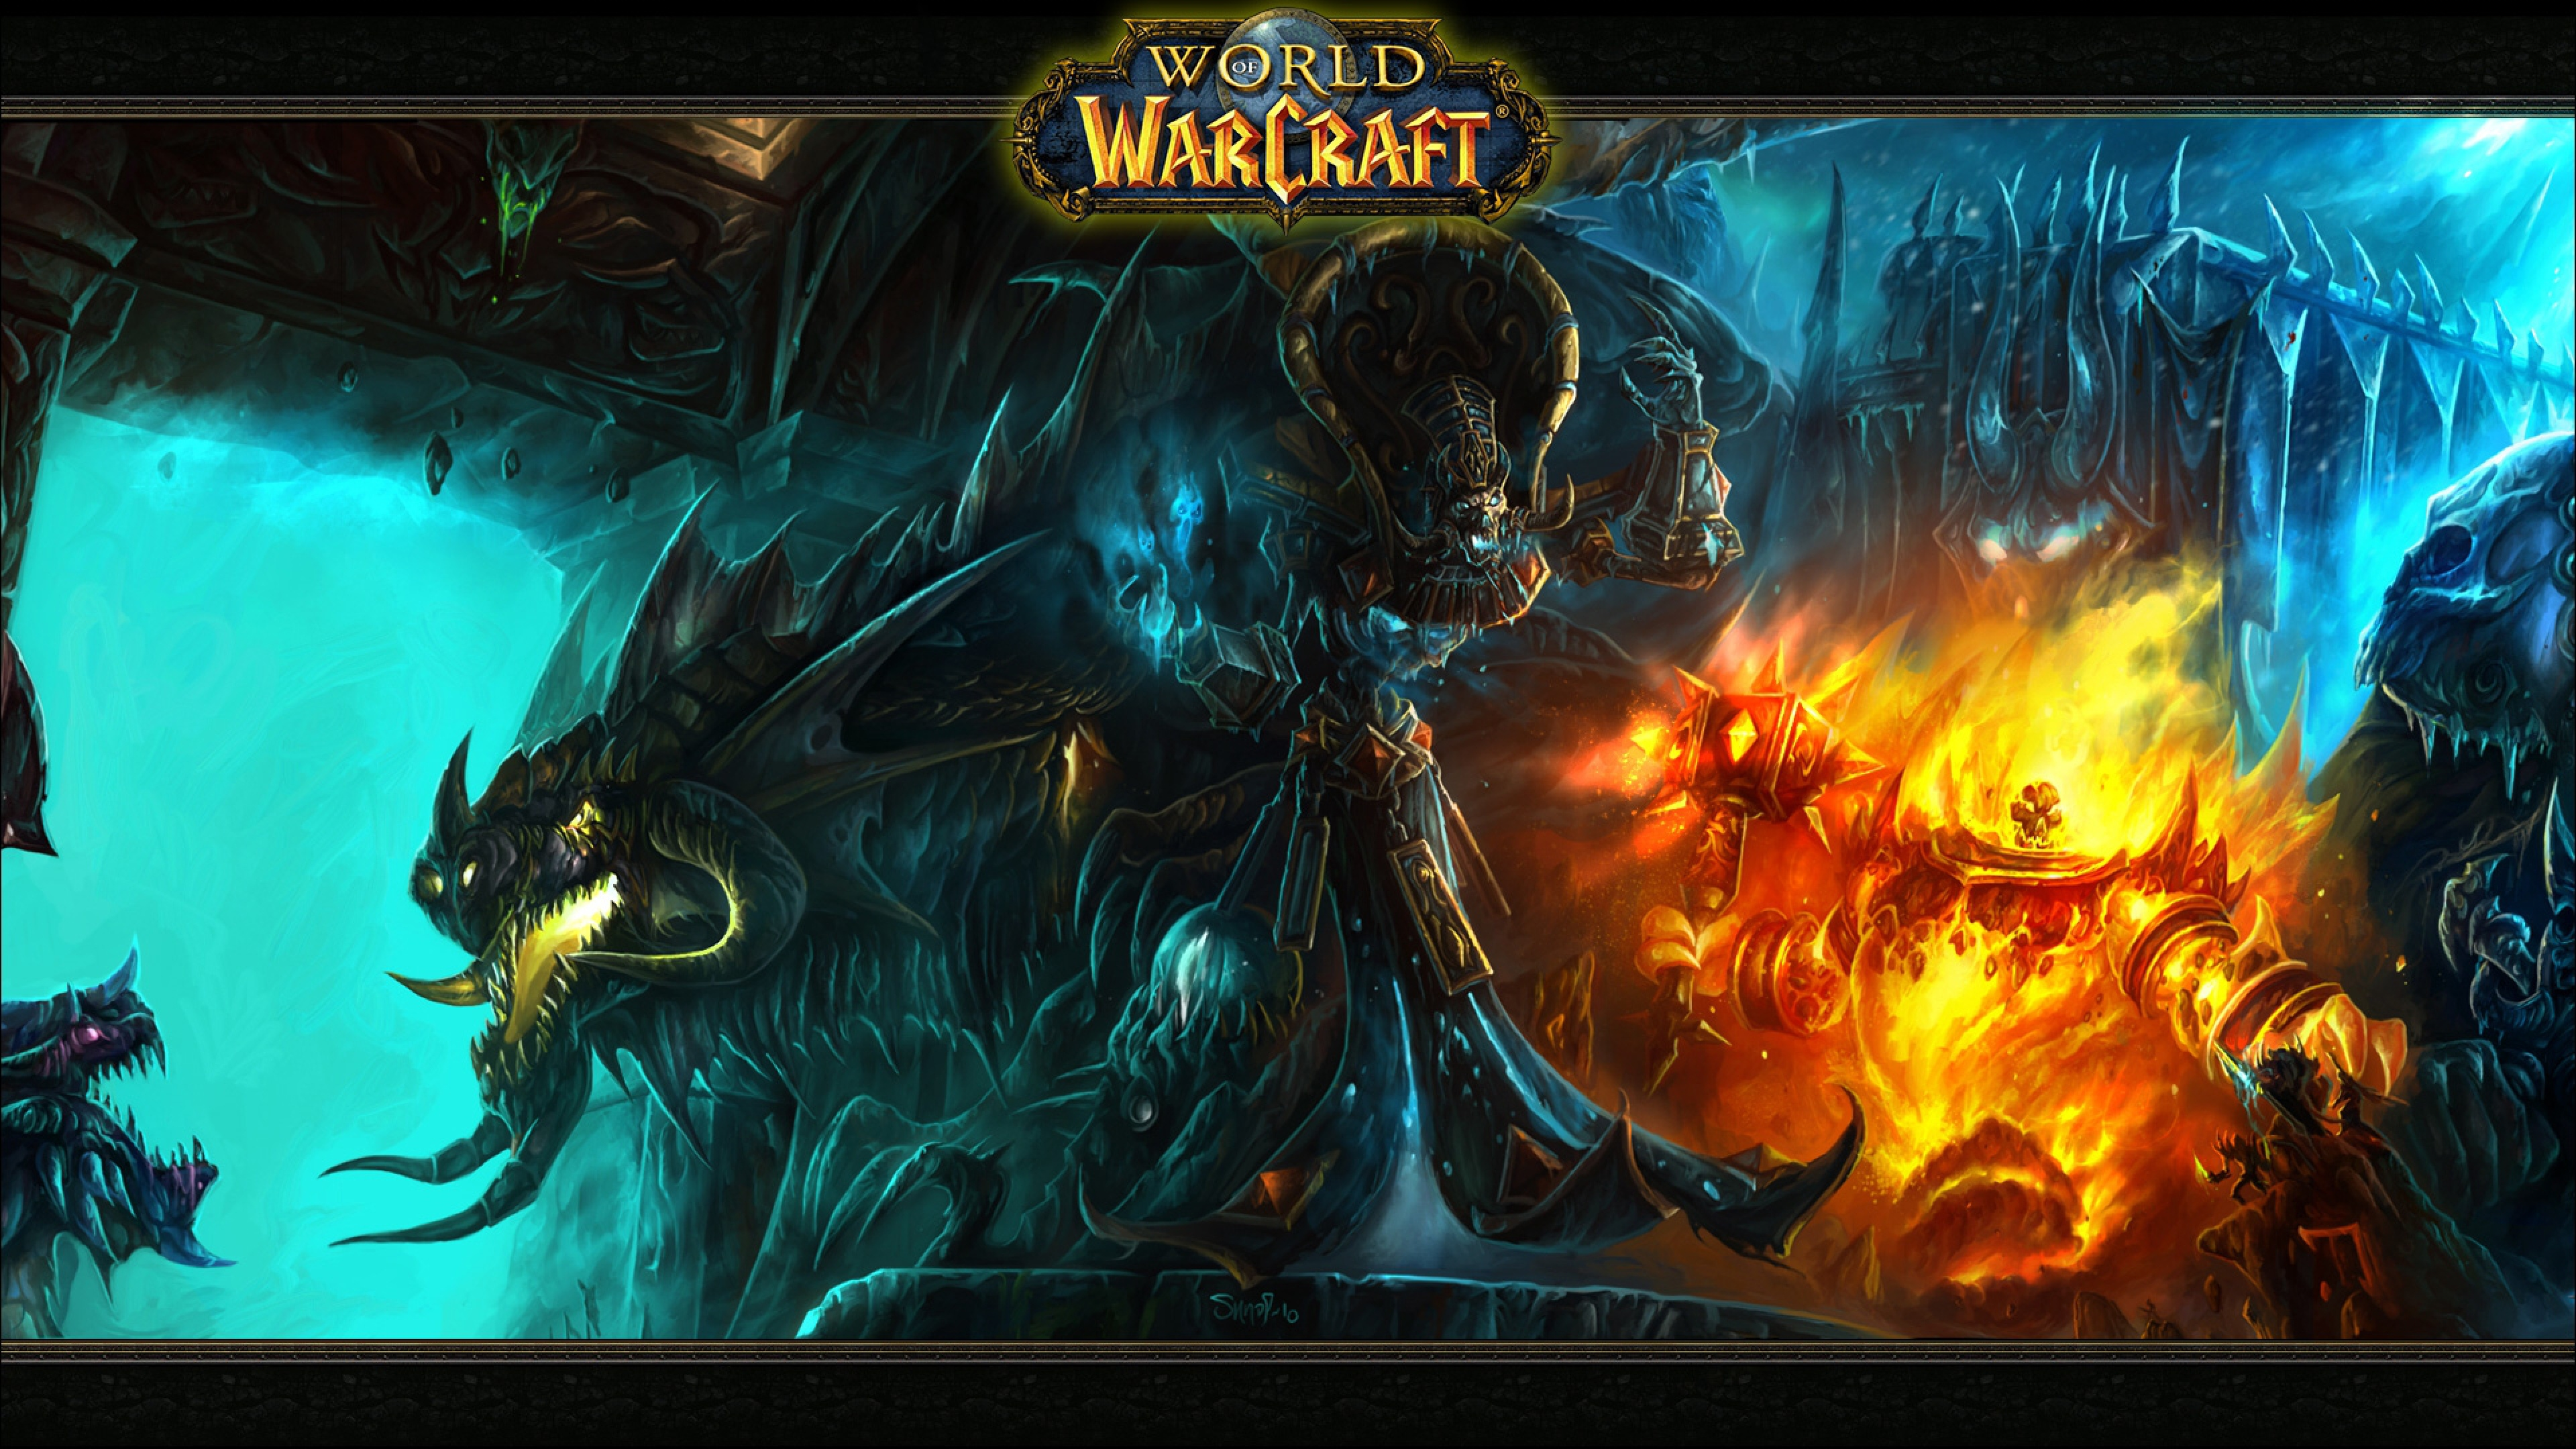 world_of_warcraft_monsters_characters_game_16246_3840x2160